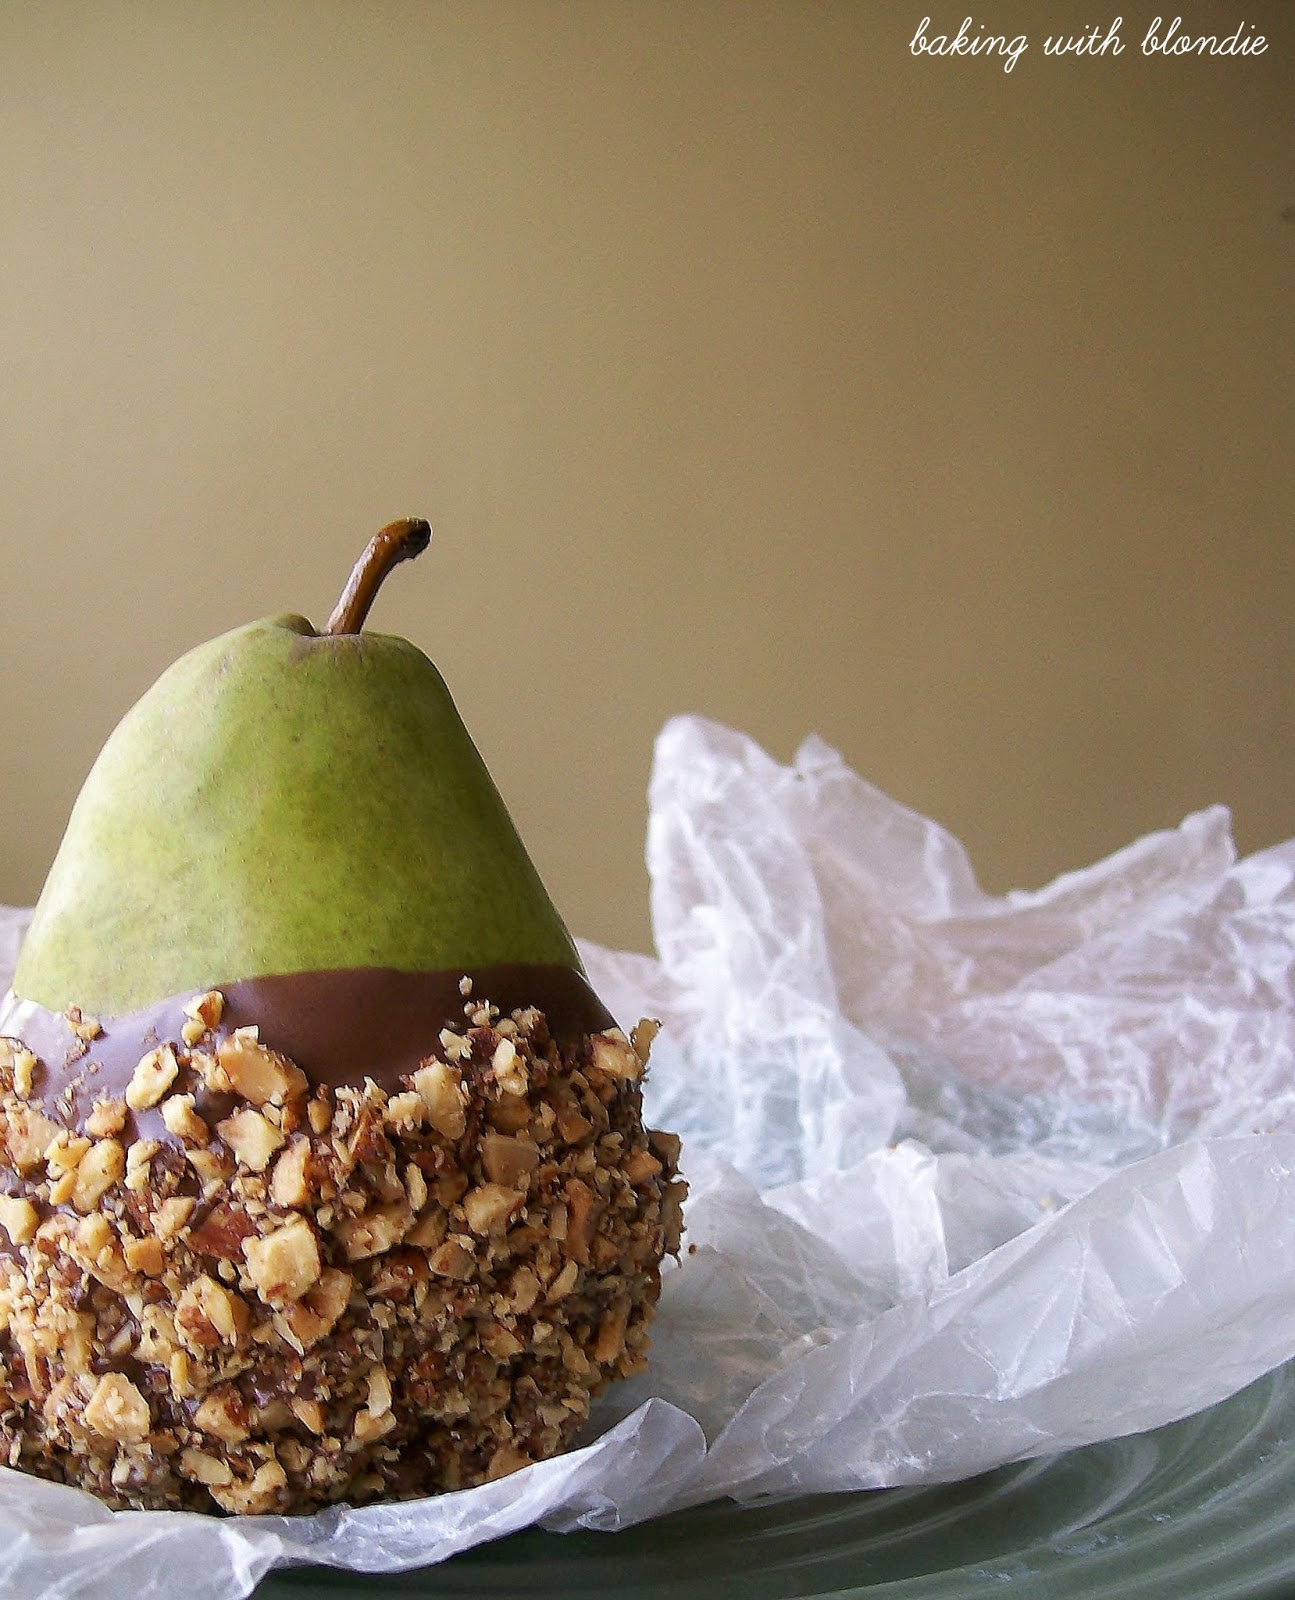 Baking with Blondie : Chocolate Dipped Pears with Salted Almond Crunch